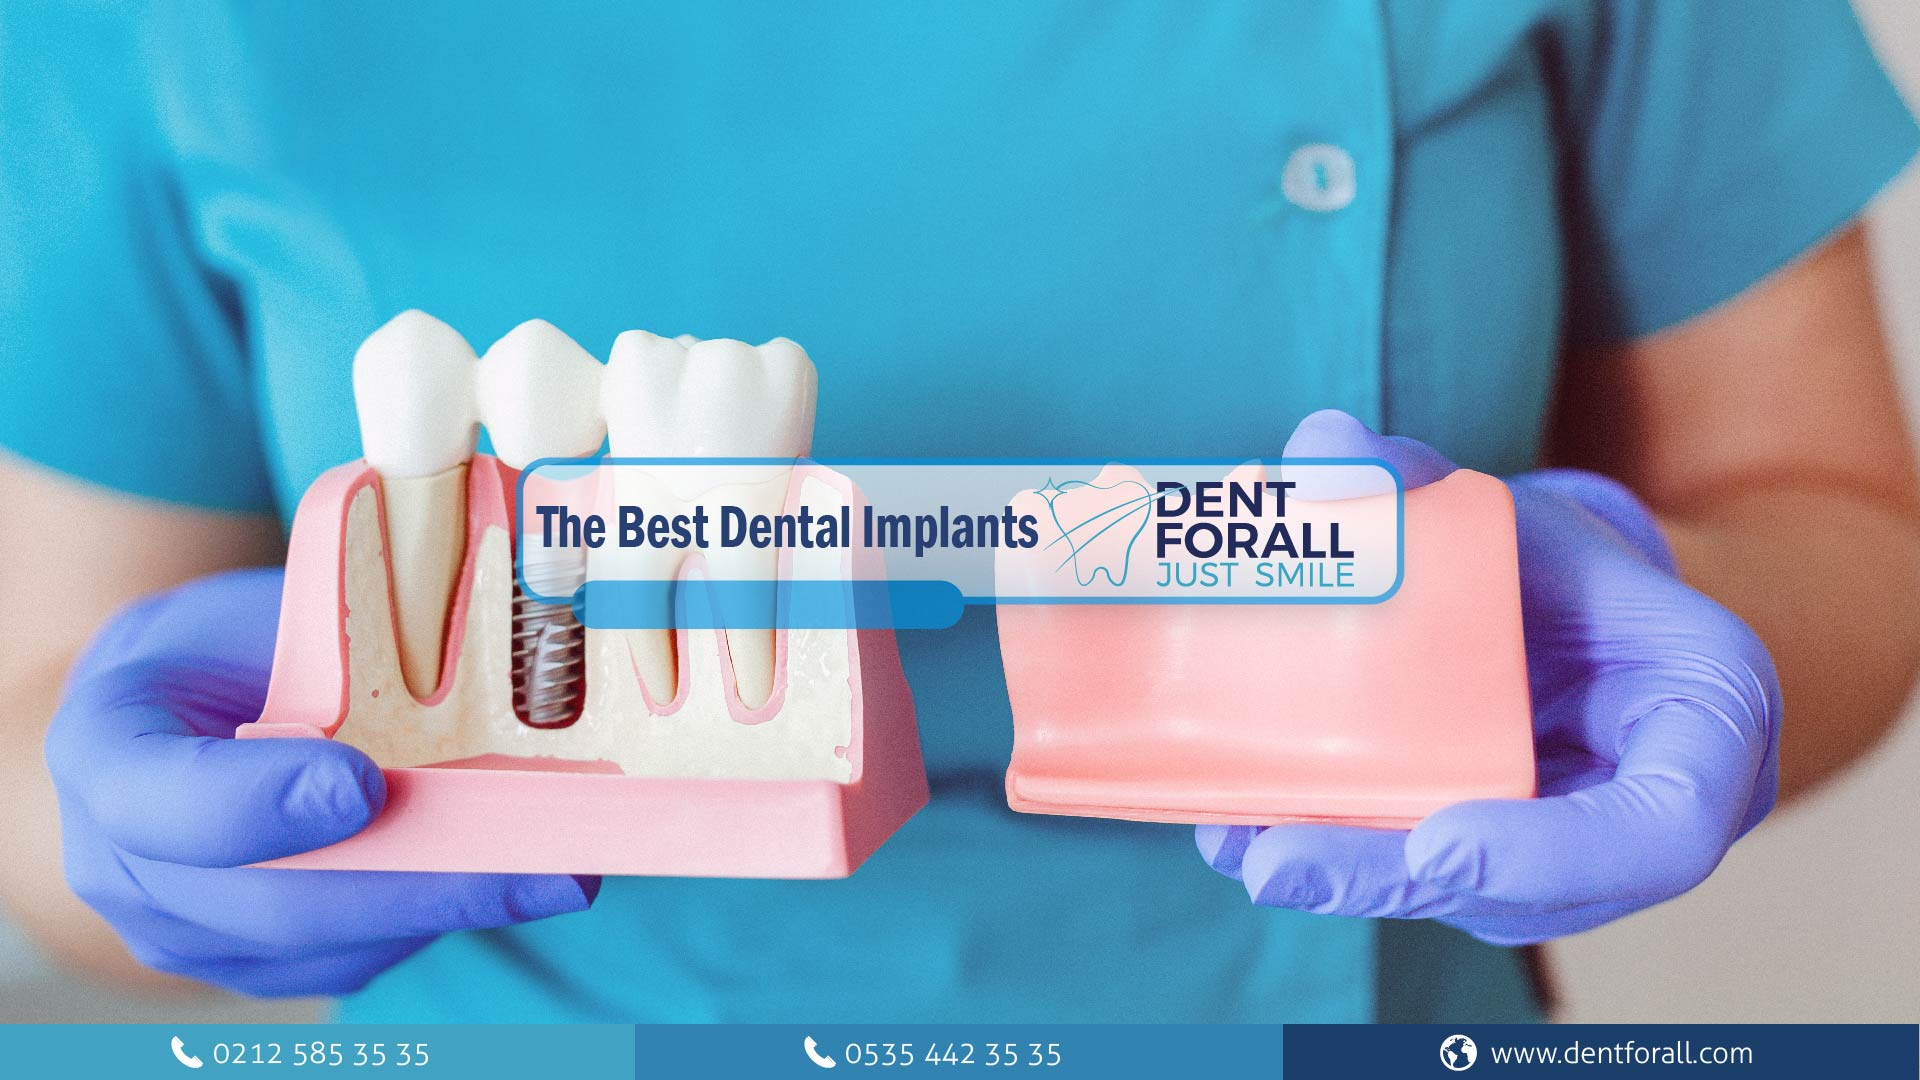 What are dental implants,  and what are the stages of dental implantation